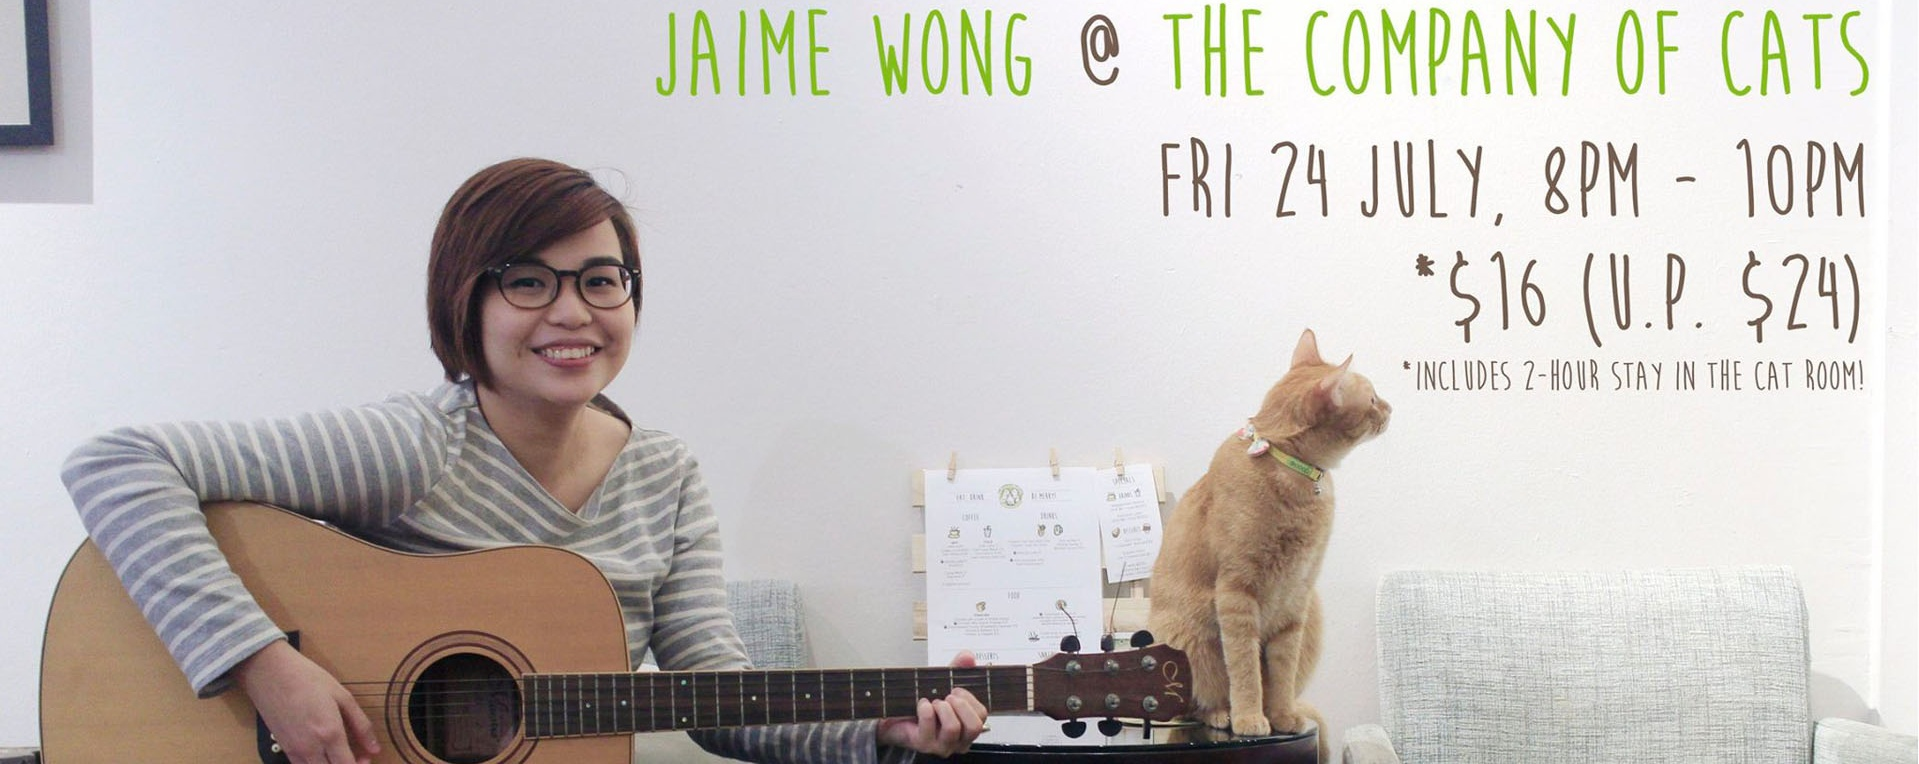 Jaime Wong @ The Company of Cats